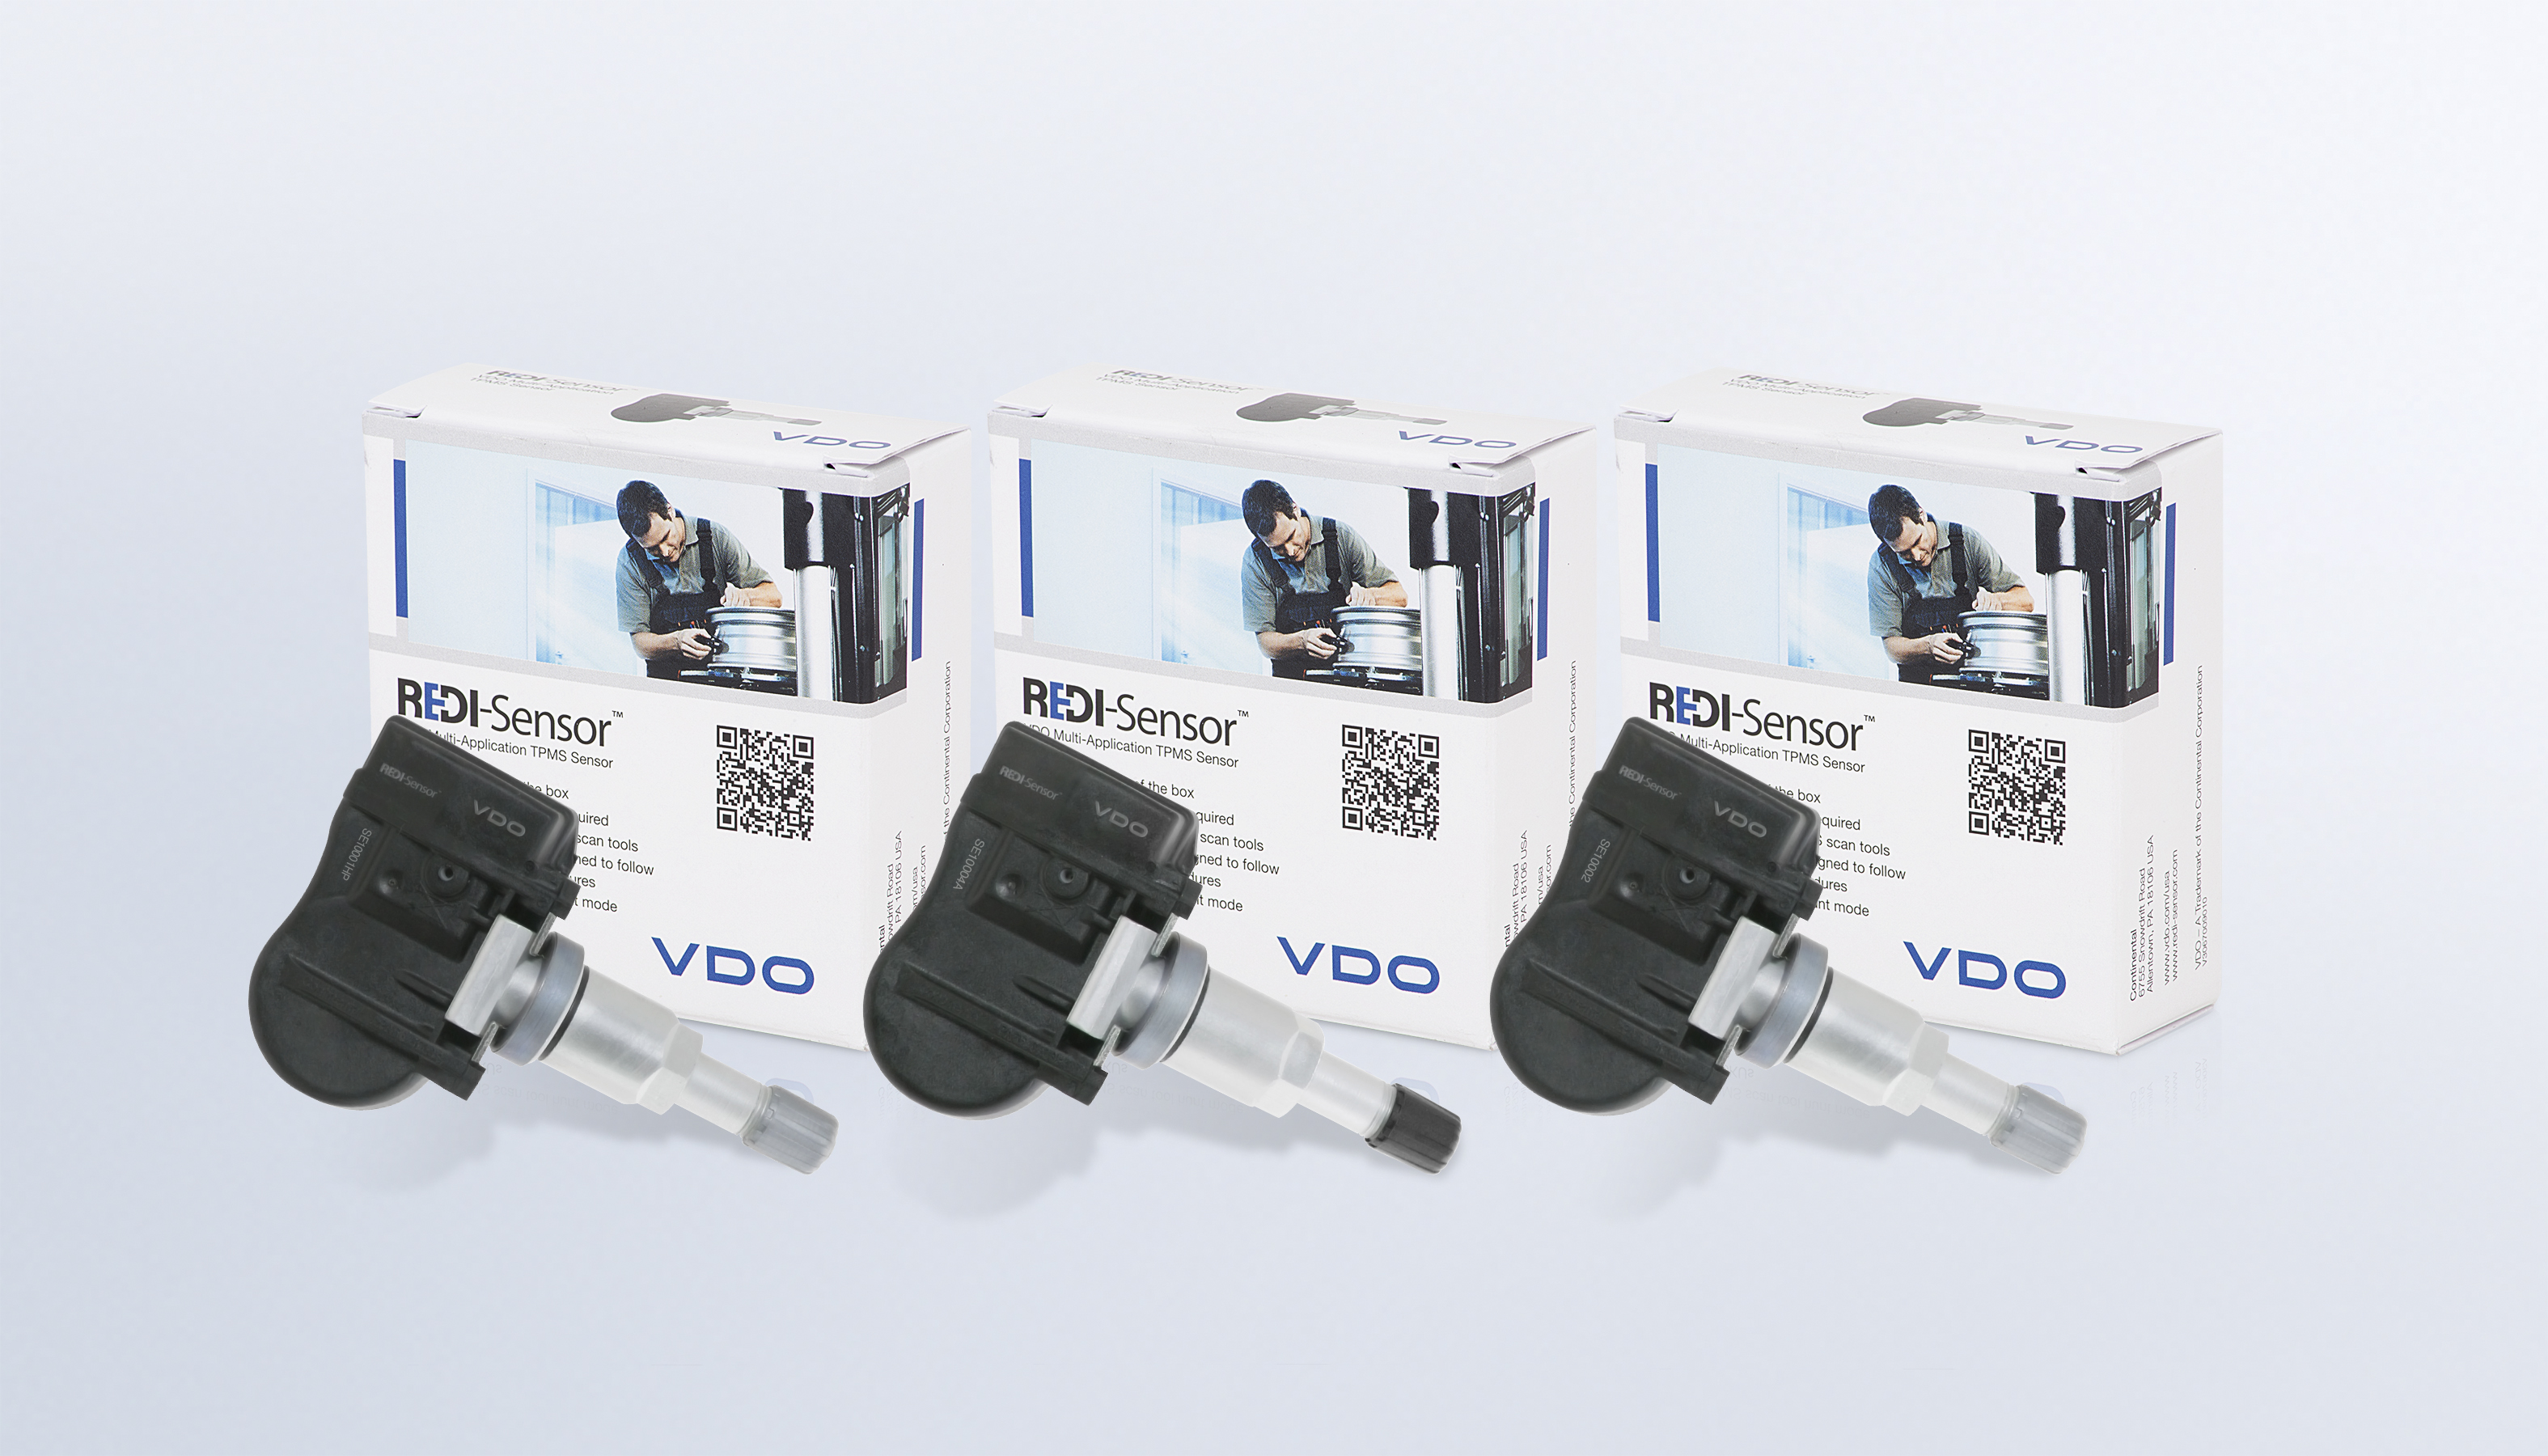 VDO REDI-Sensor TPMS training video with stem replacement tips